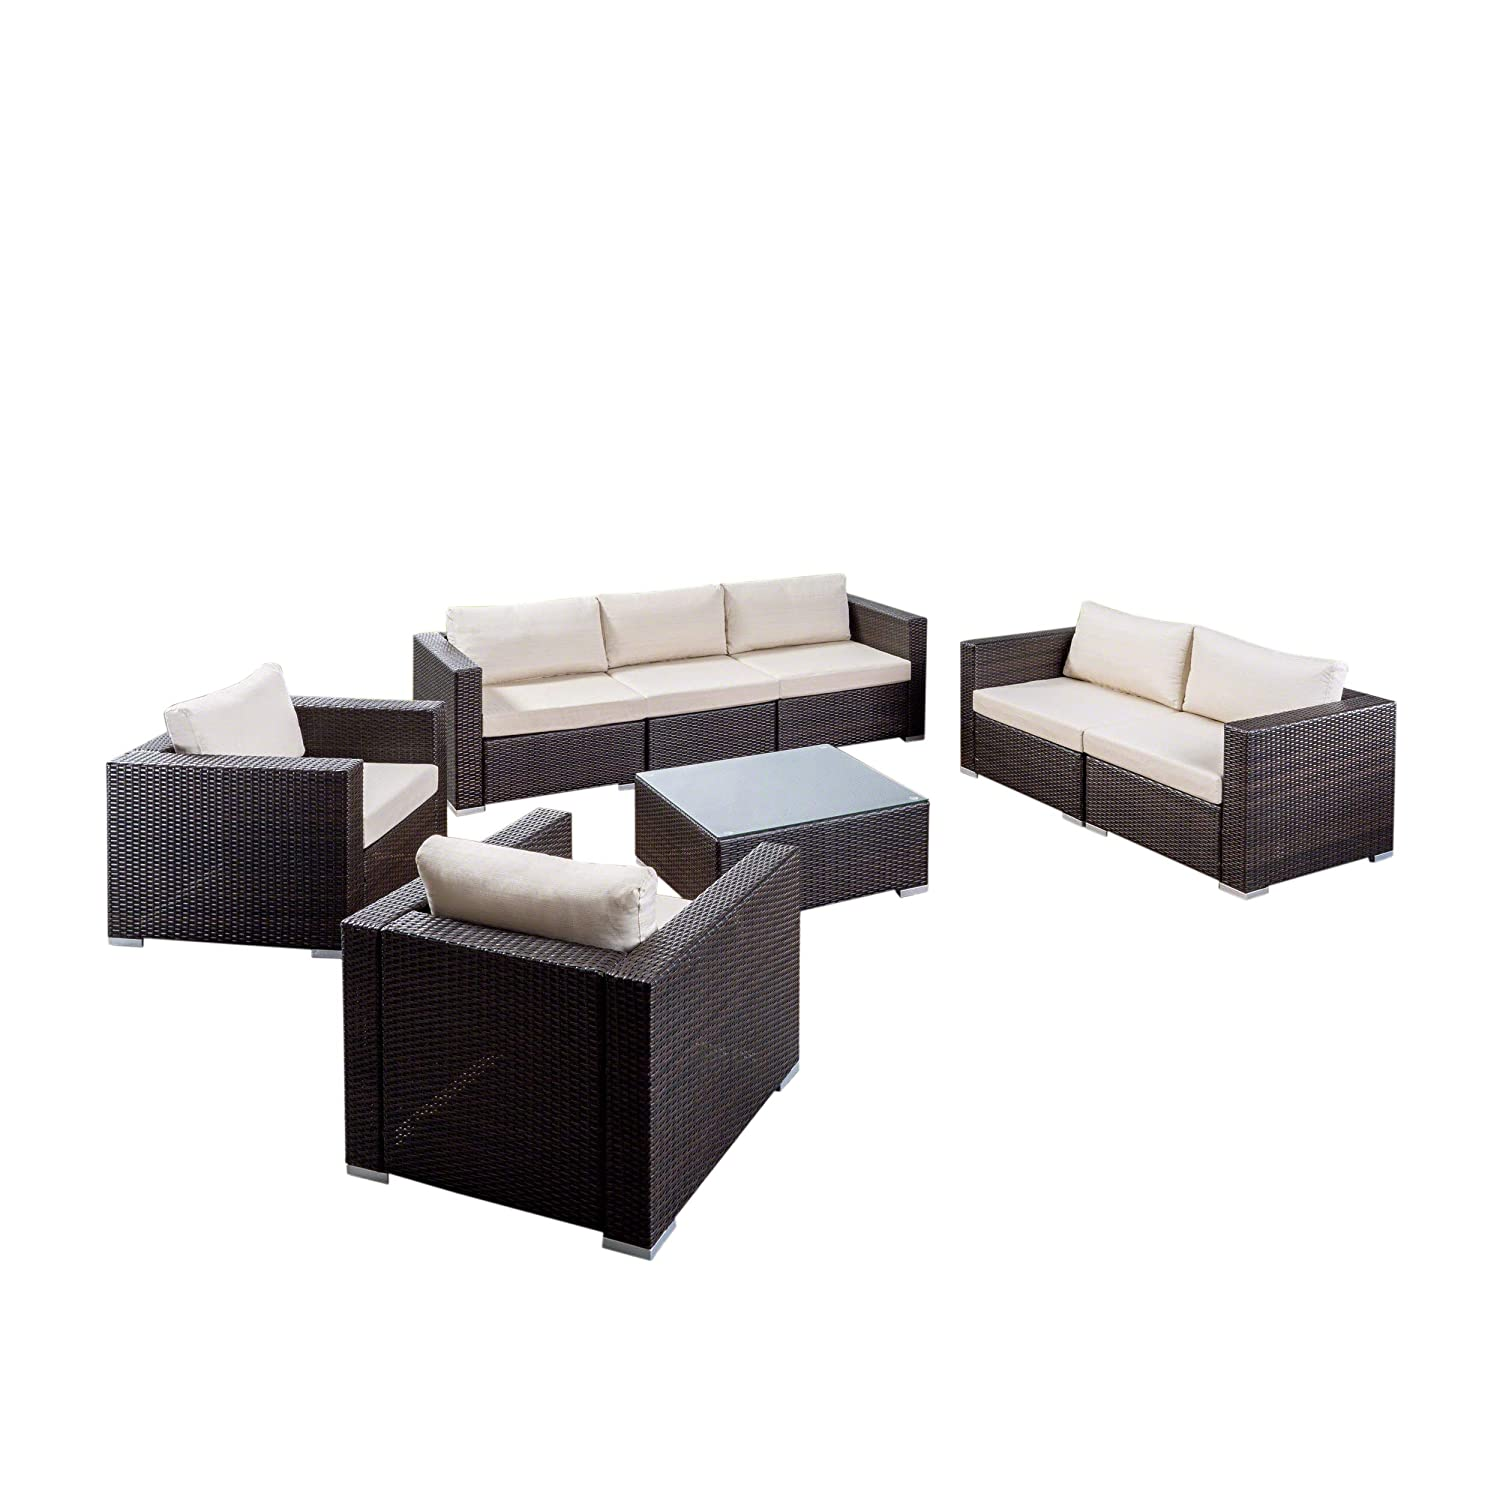 Great Deal Furniture | Samuel Outdoor 8-Piece Wicker/Aluminum Sofa Chat Set with Cushions | Multibrown and Beige